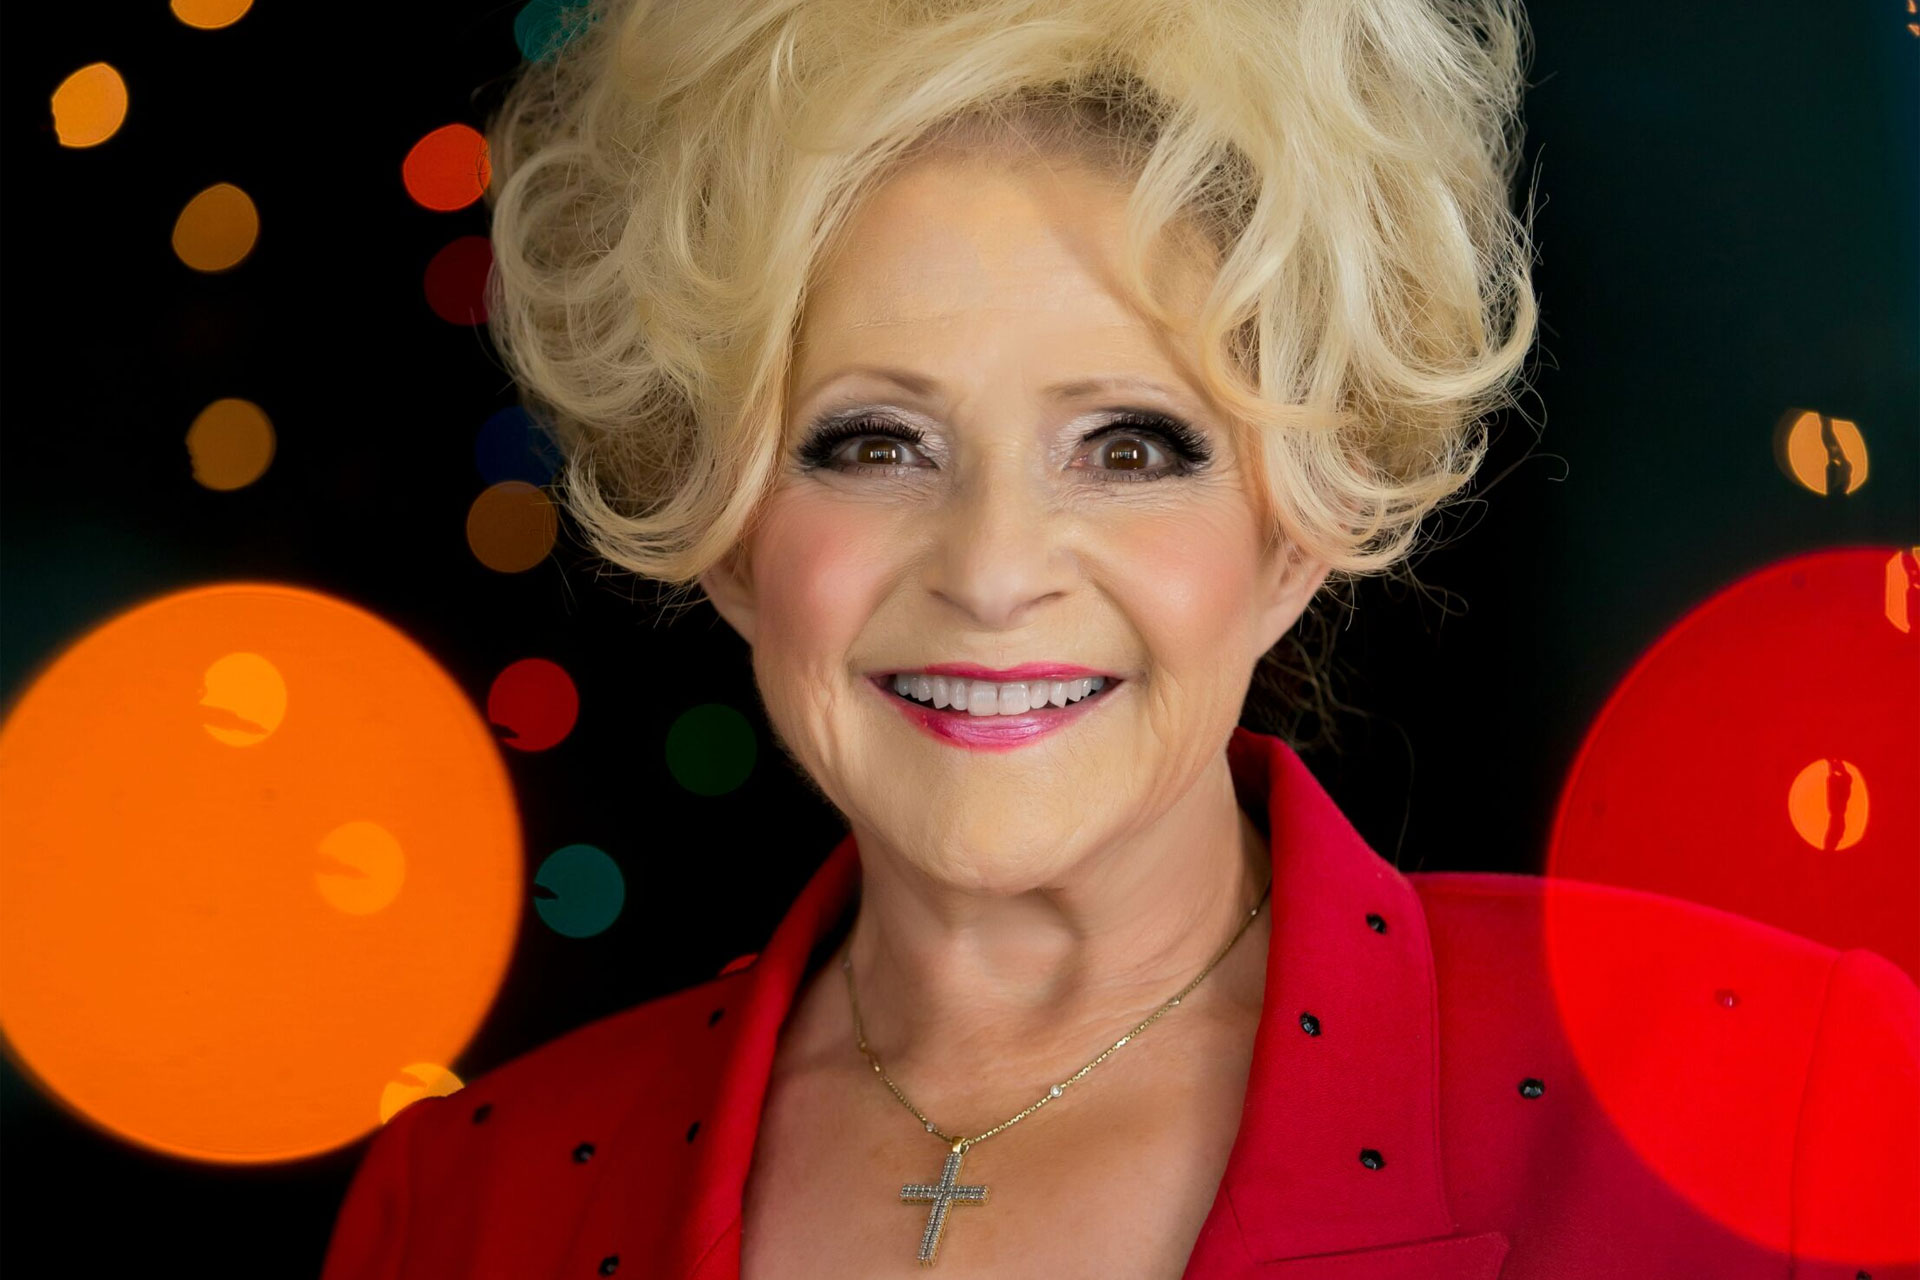 The 76-year old daughter of father (?) and mother(?) Brenda Lee in 2021 photo. Brenda Lee earned a  million dollar salary - leaving the net worth at  million in 2021